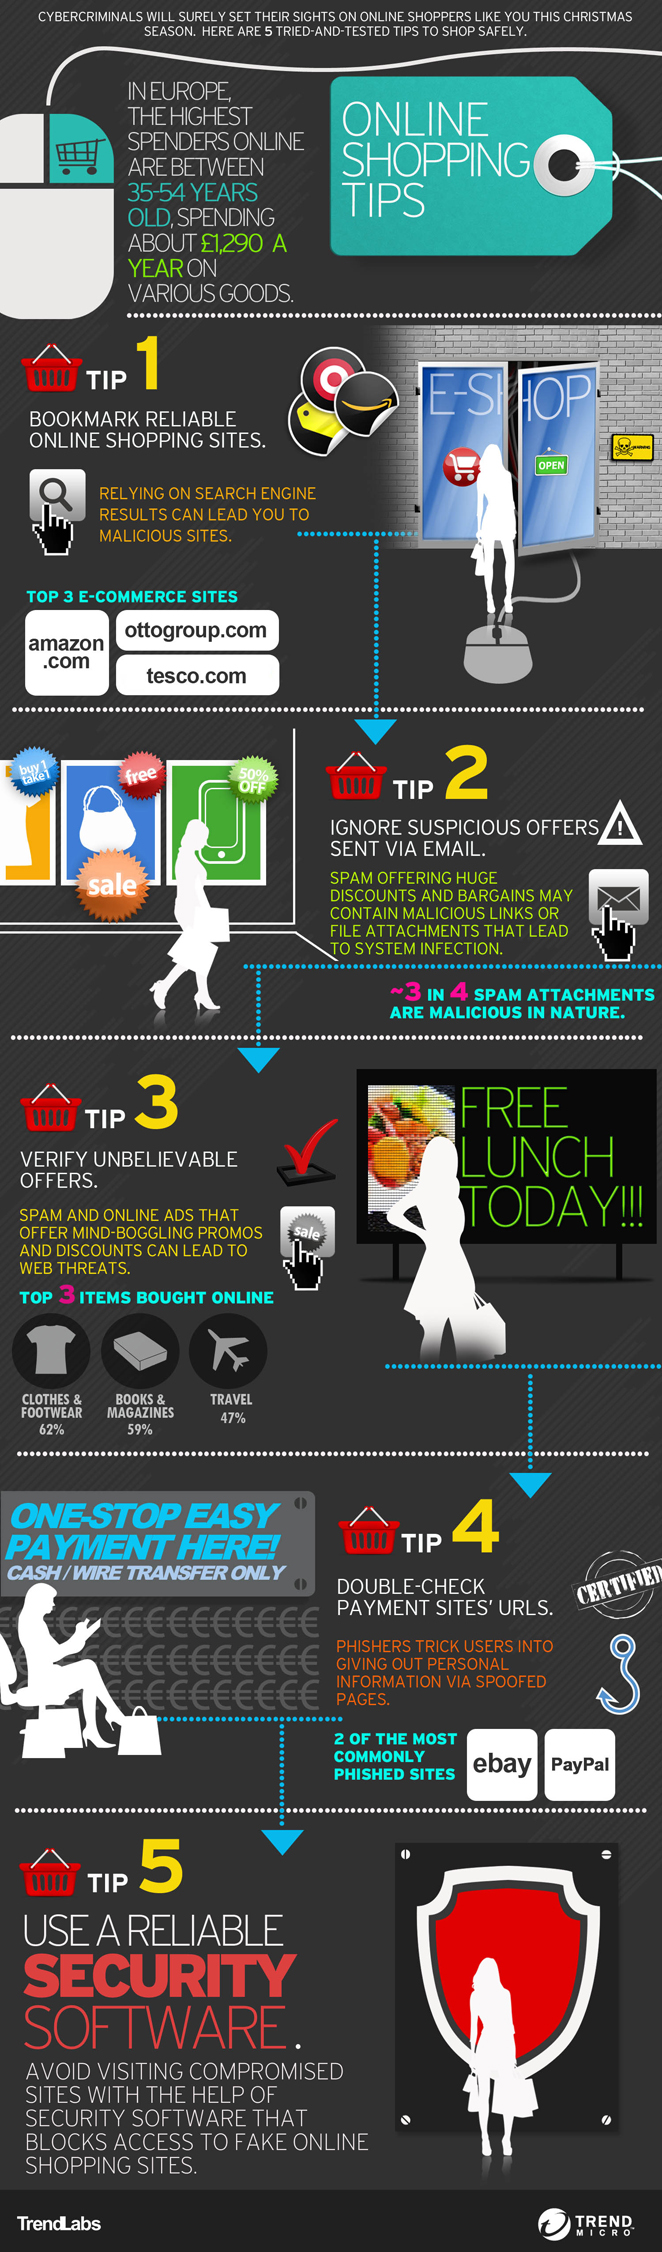 5 tips to shop safely online